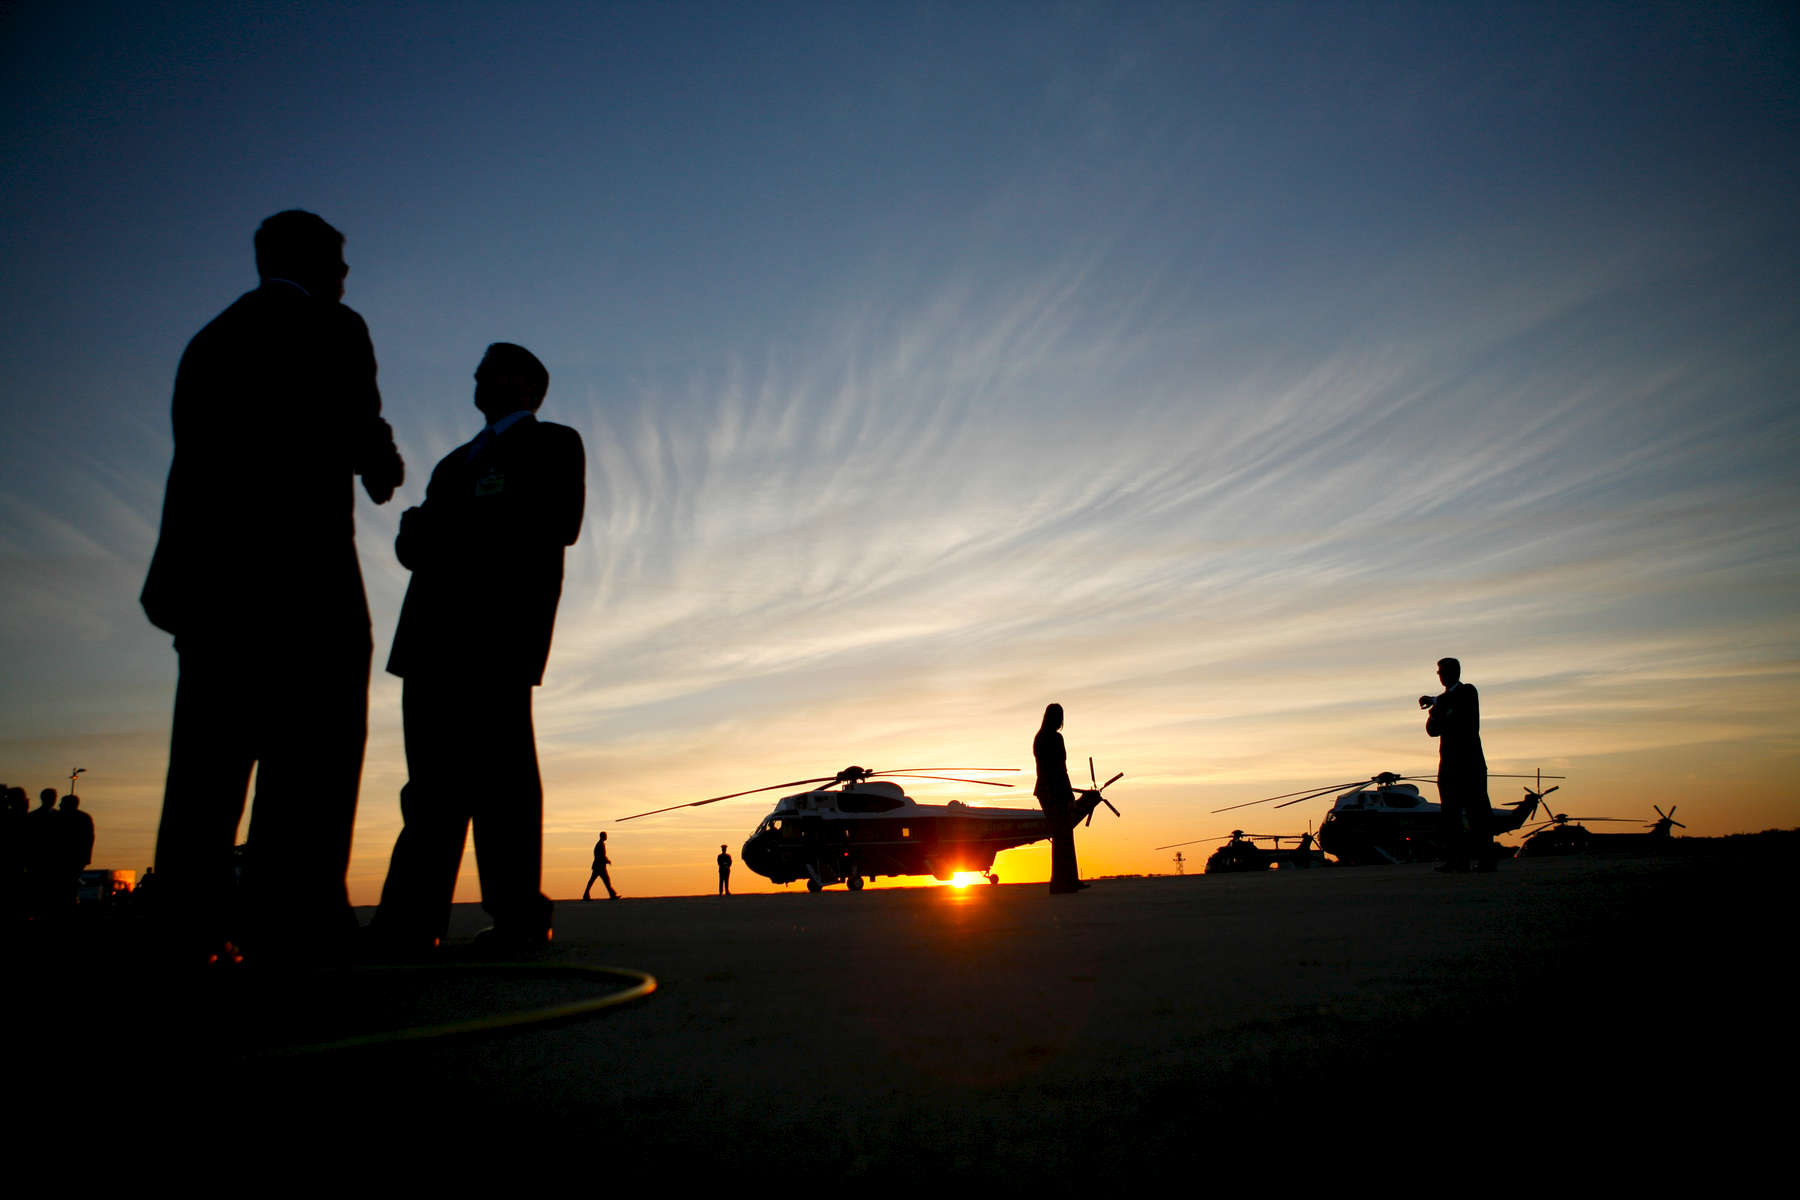 President Bush, Laura Bush: Arrival at Rostock - Laage Airport. Rostock, Germany. Marine One at sunset. Silhouette of staff members.